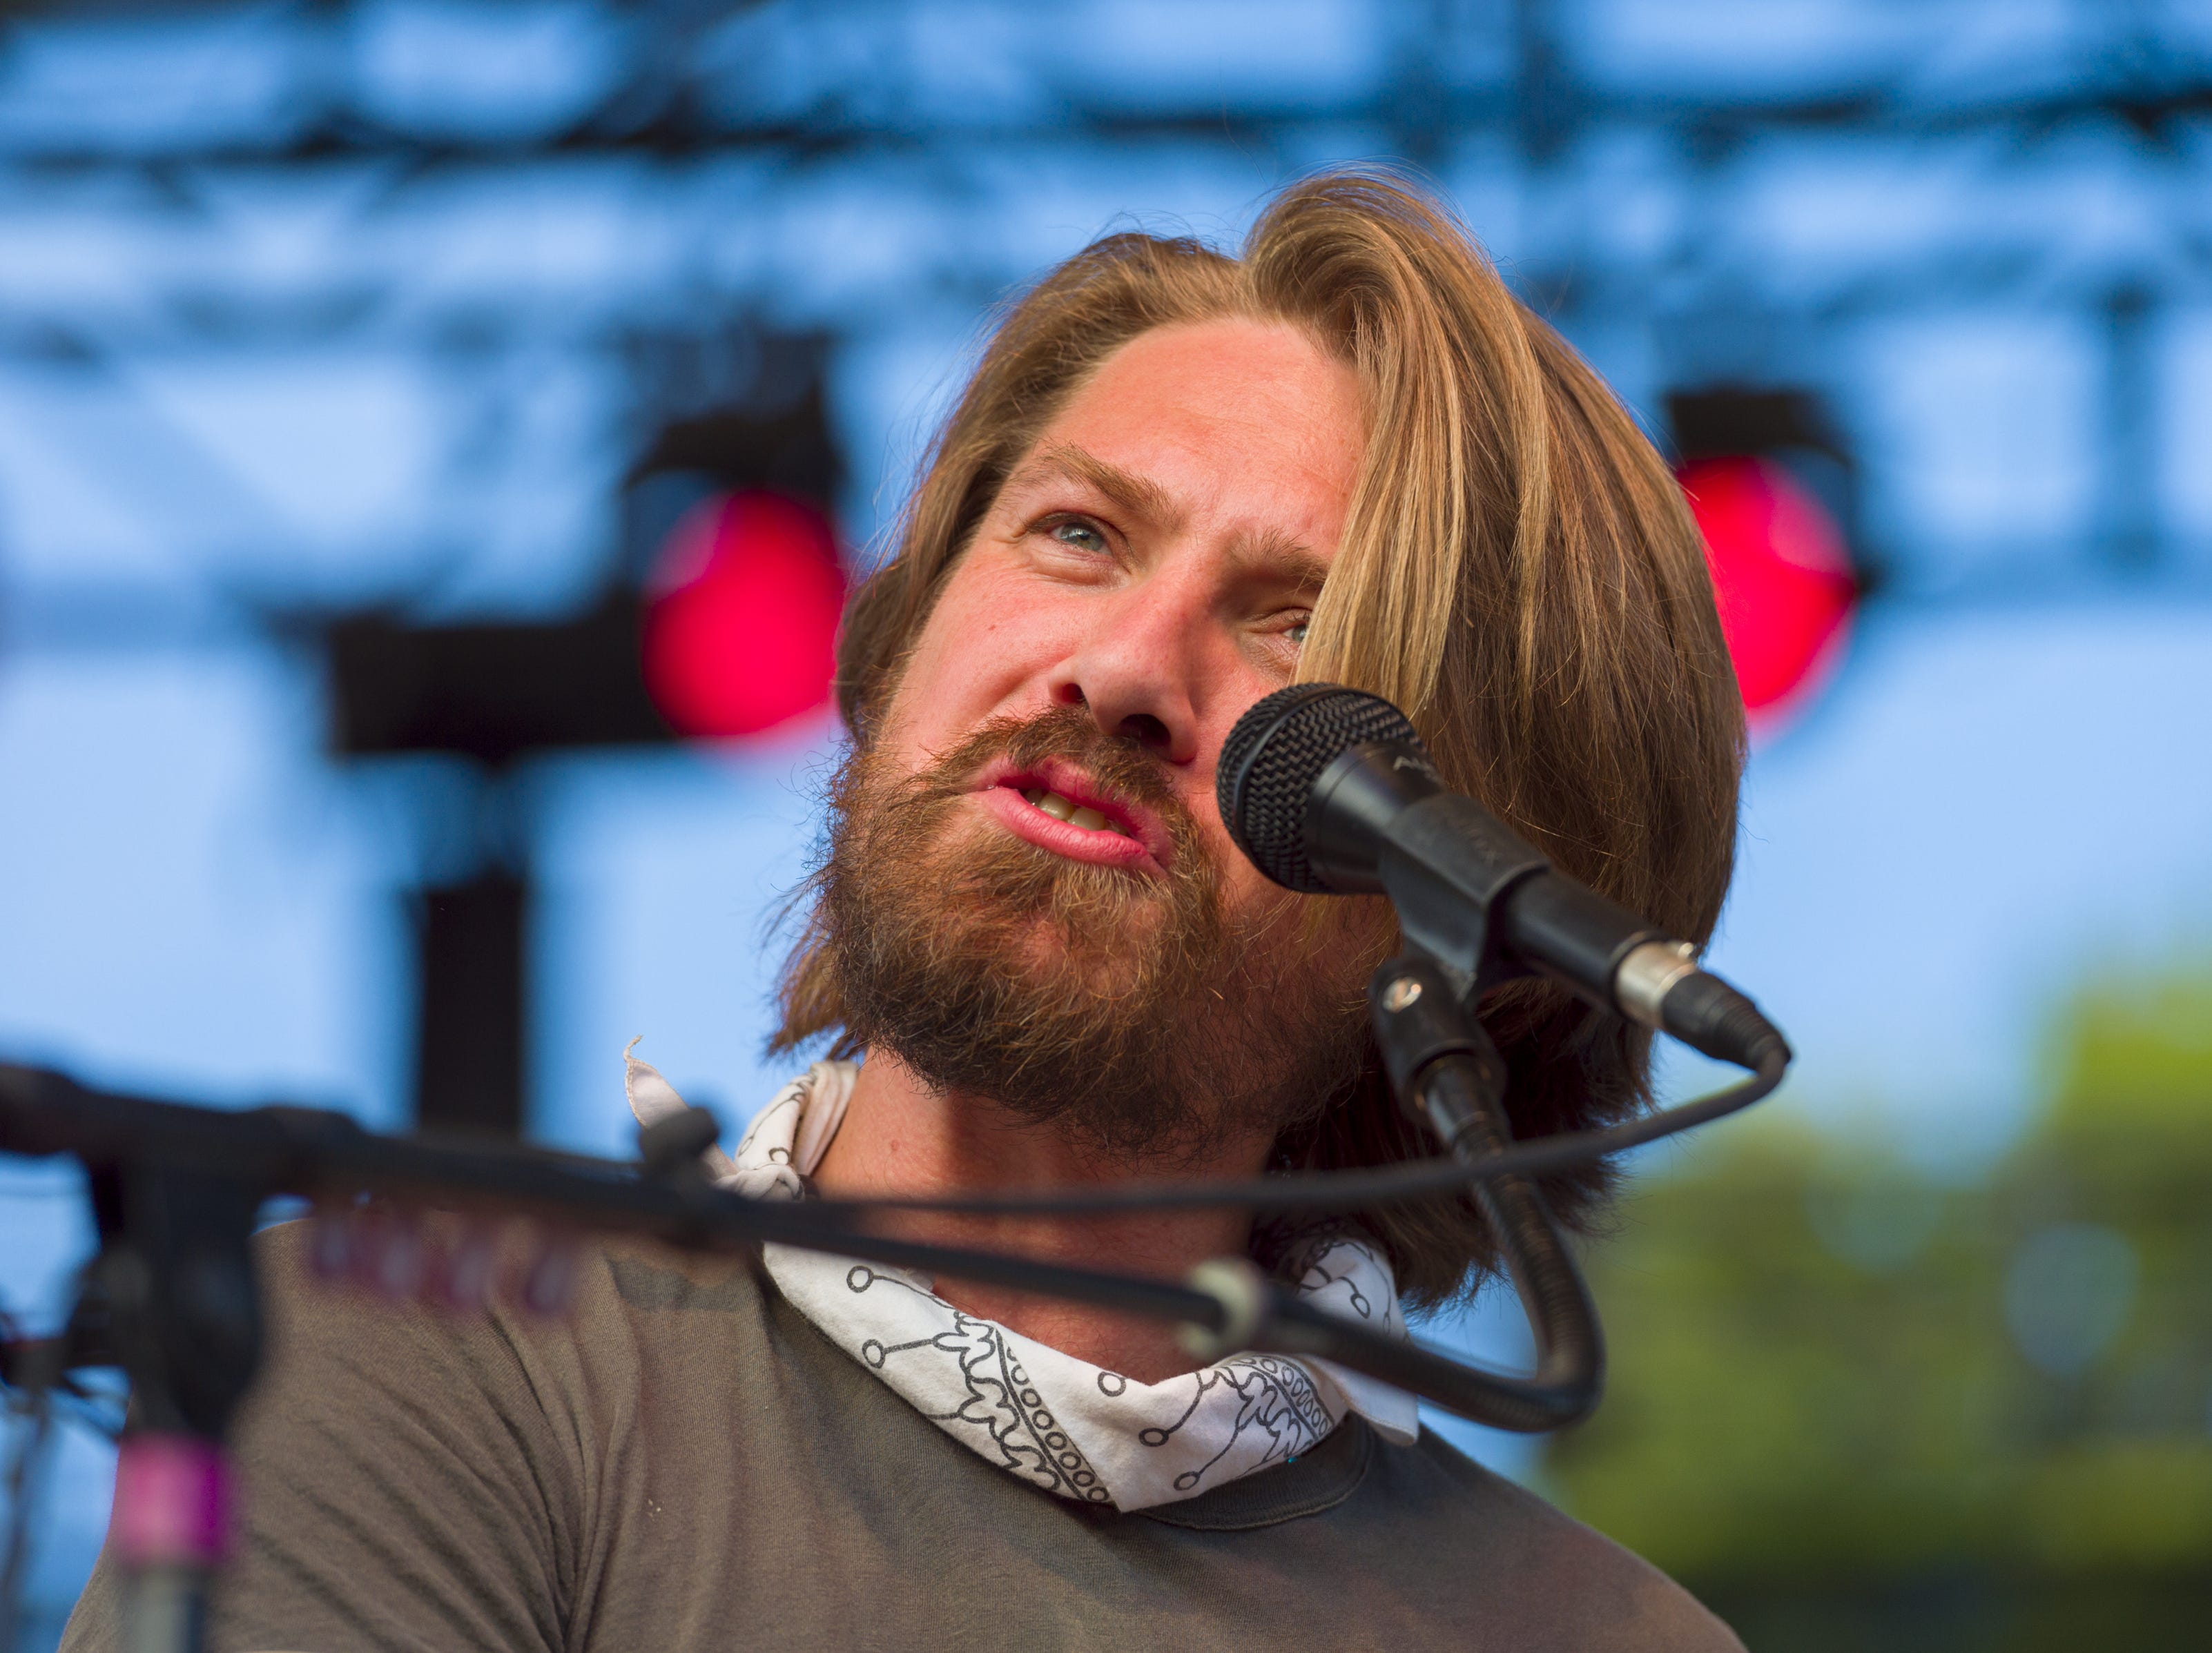 """Taylor Hanson, piano and singer, performs on stage. Hanson, a trio of siblings known for the No. 1 hit in 1997 titled """"MMMBop"""" performed at the Indiana State Fair, Friday, Aug. 10, 2018, on the Chevrolet Free Stage."""